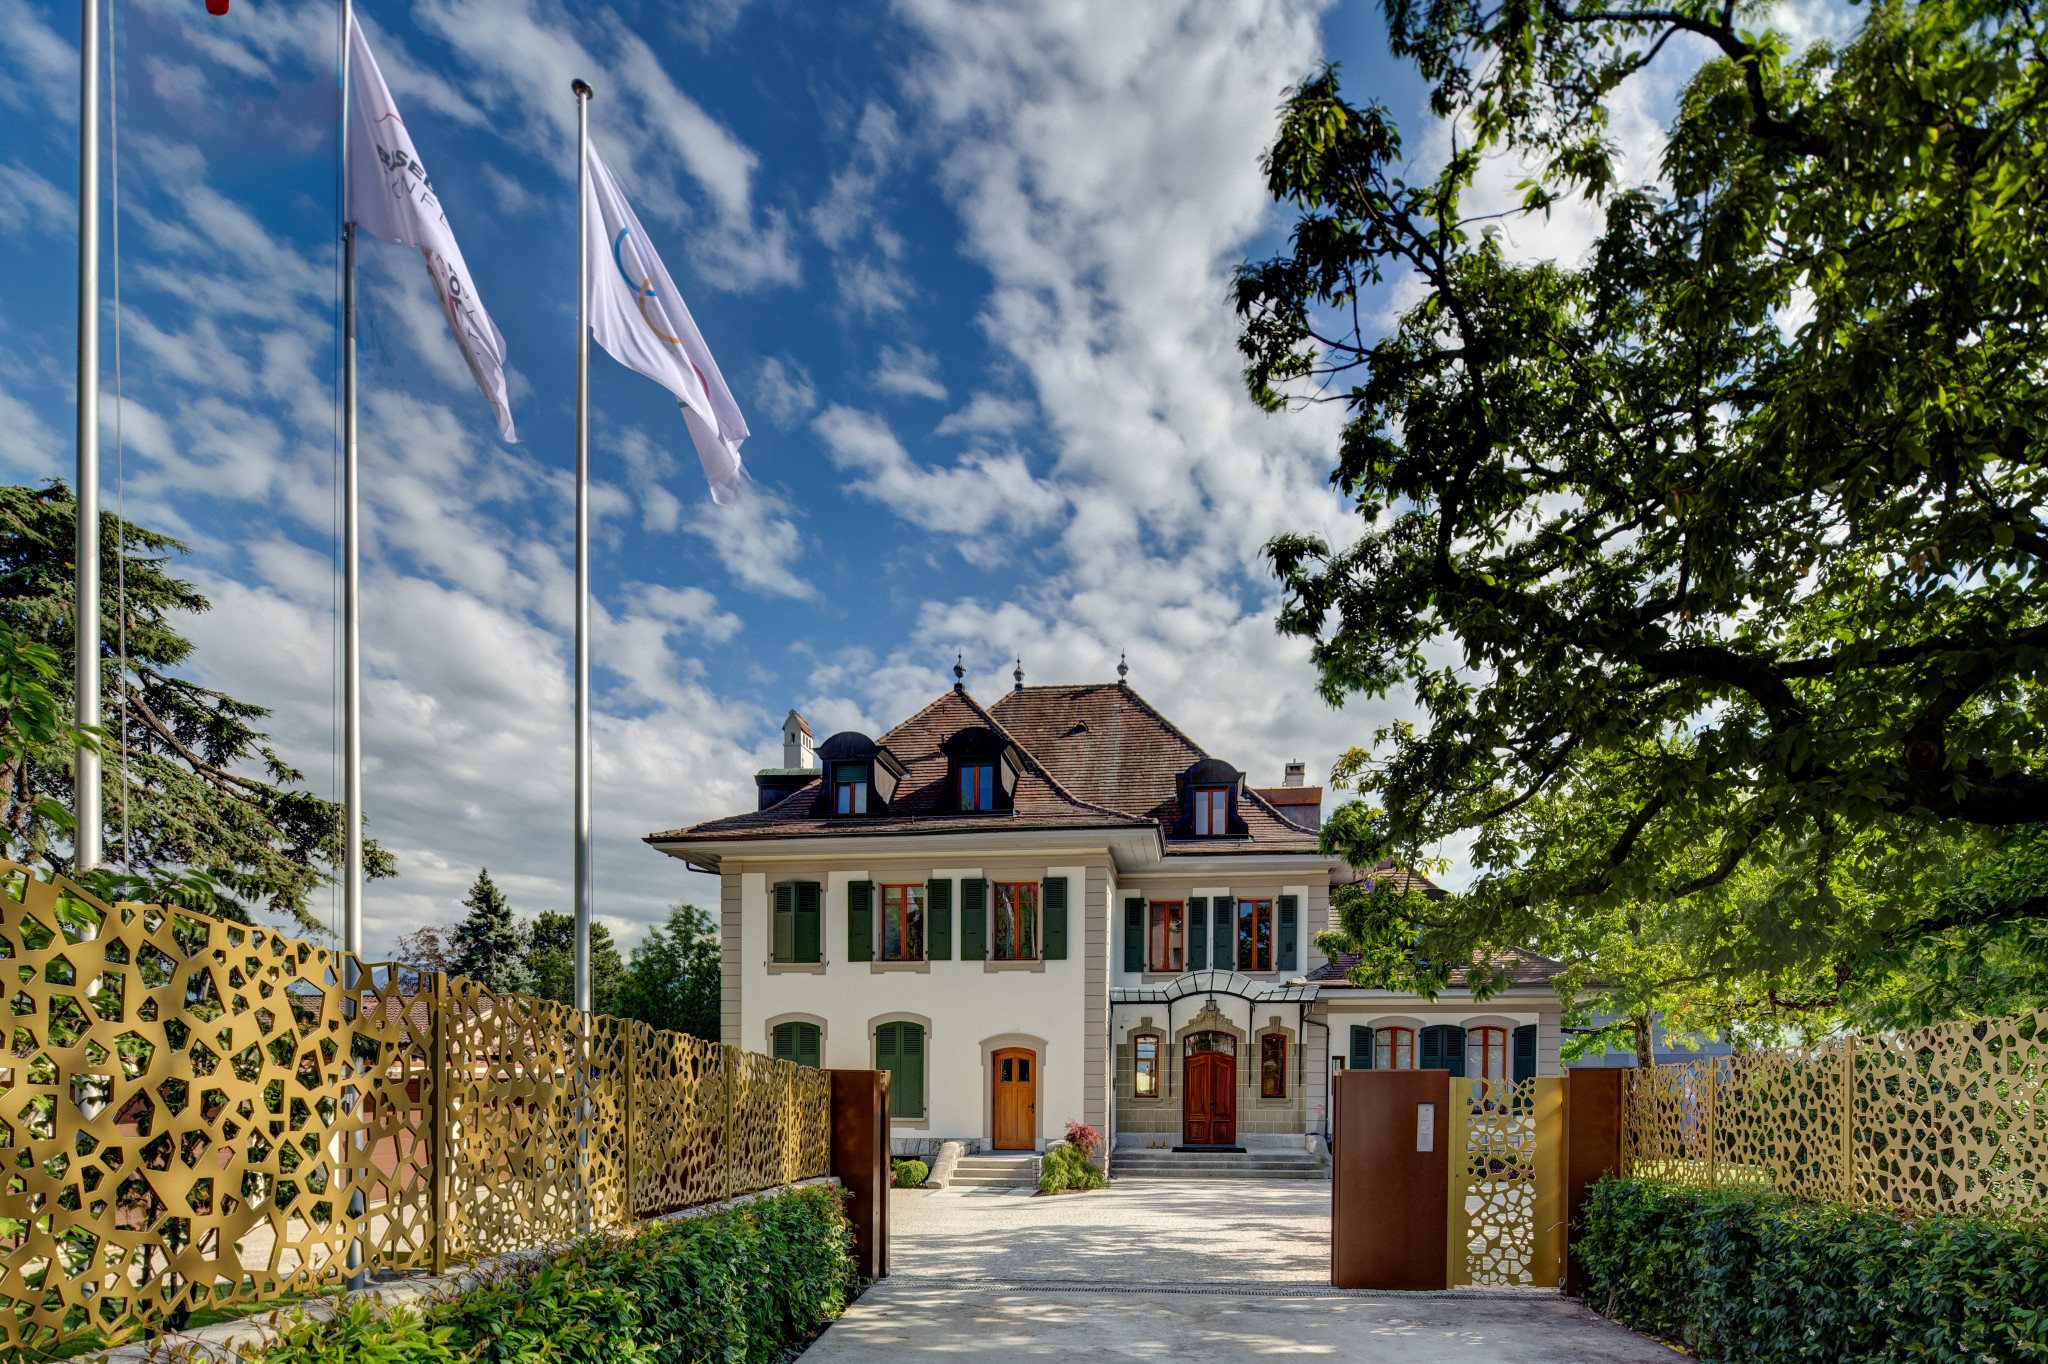 The new WBSC headquarters are located in Pully, a suburb of Lausanne ©WBSC